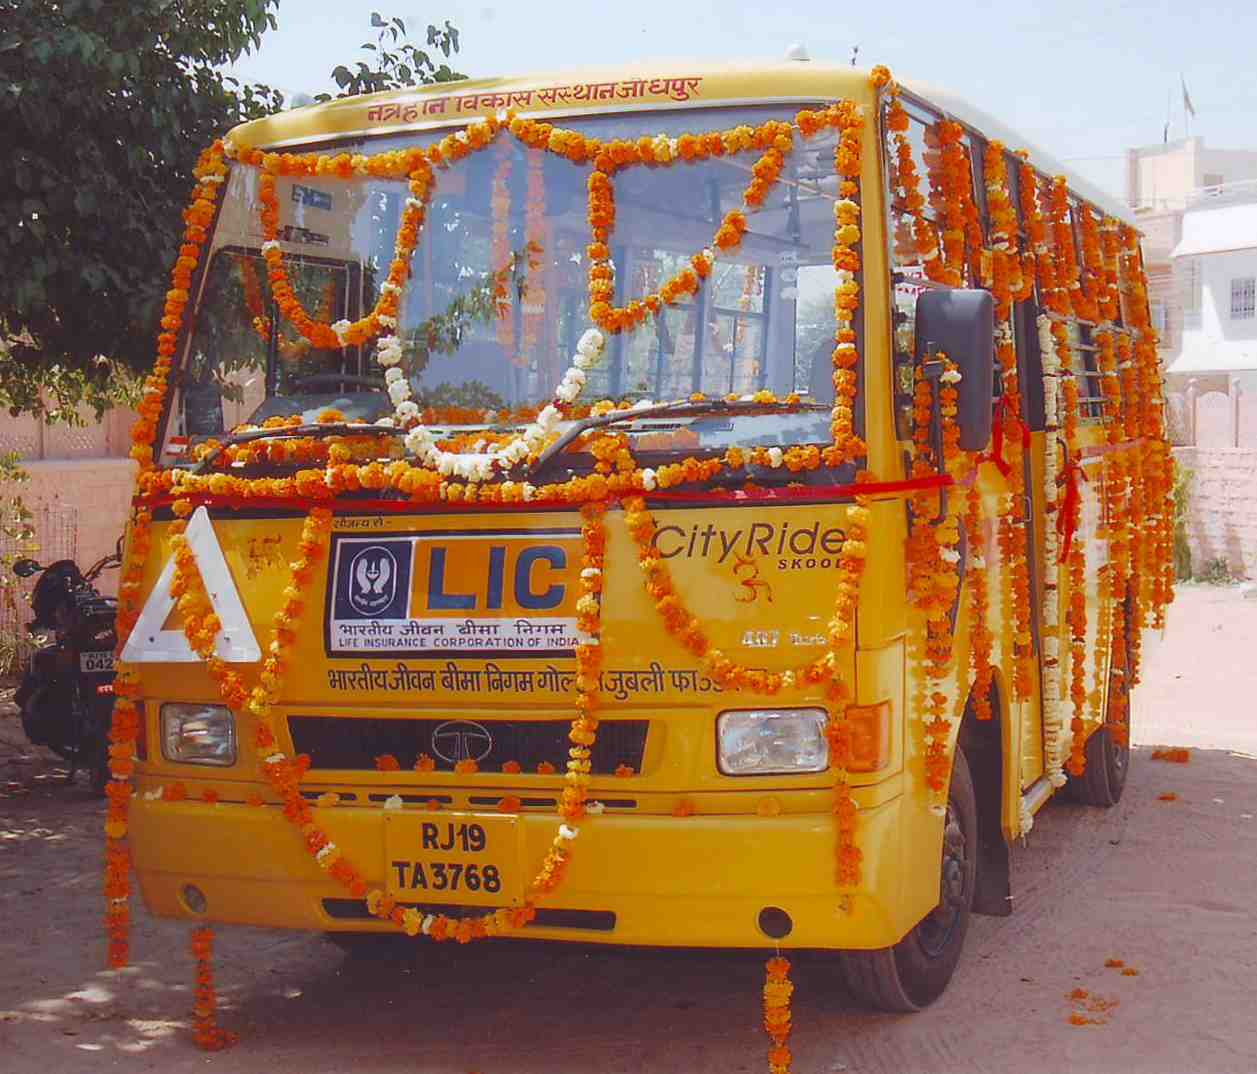 INAUGURATION OF BUS